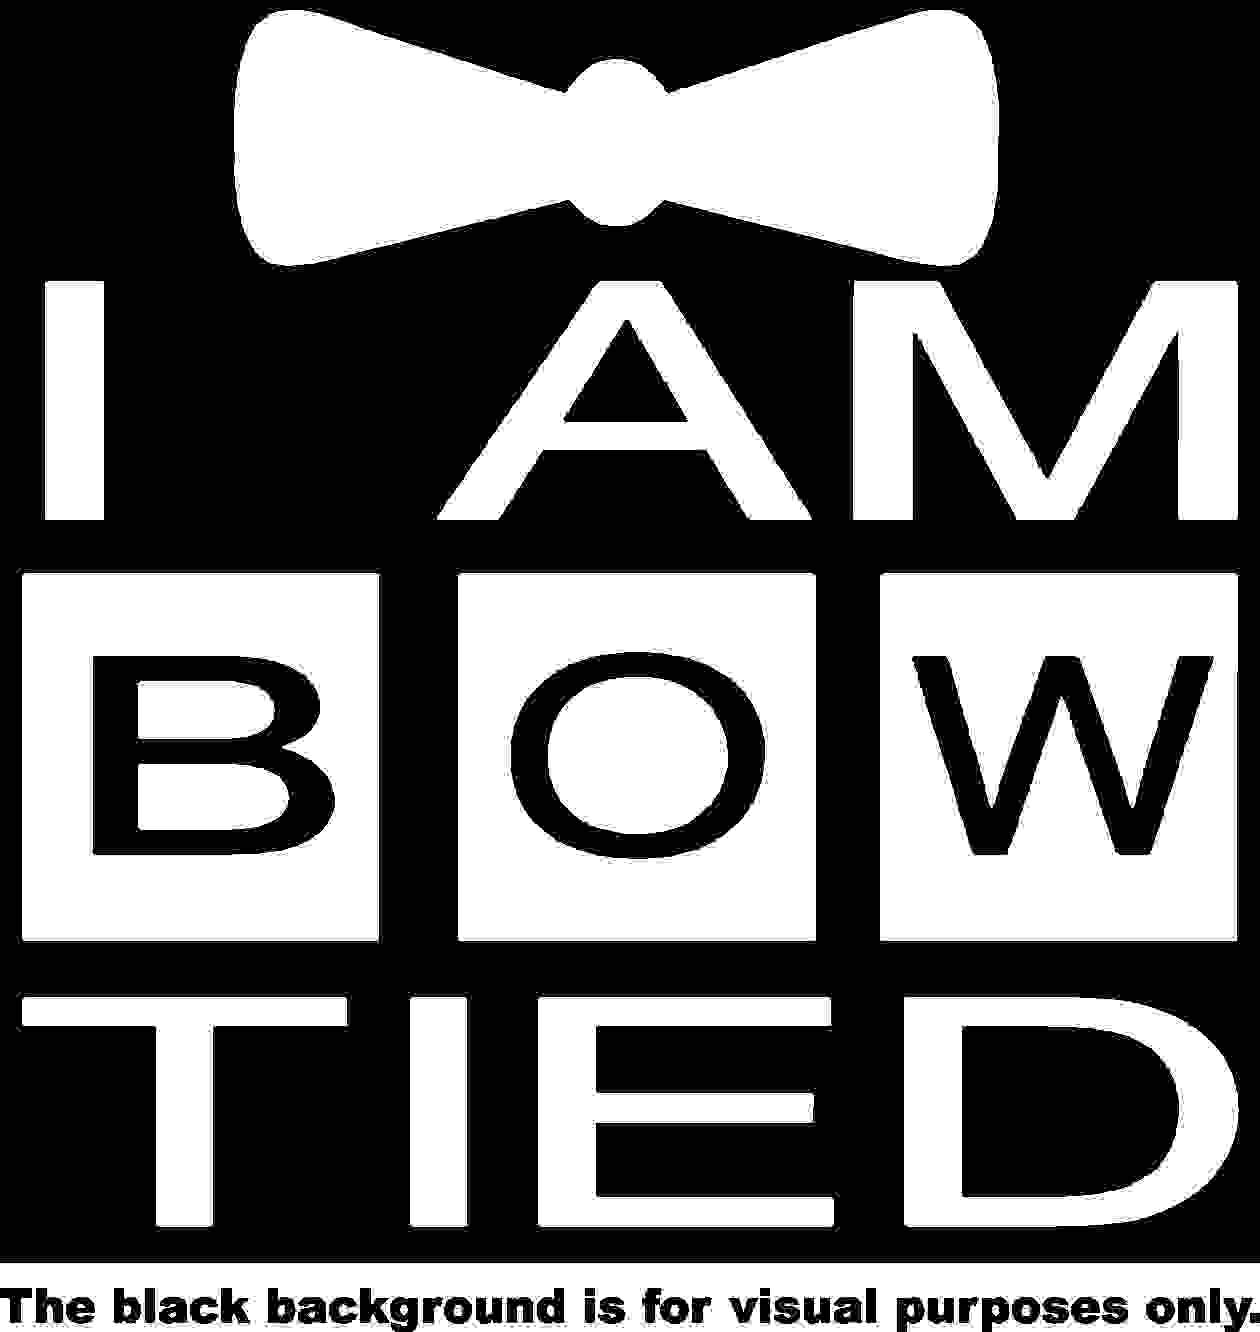 I am Bow Tied DW Window Tumblers Wall Decal Sticker Vinyl Laptops Cellphones Phones Tablets Ipads Helmets Motorcycles Computer Towers V /& T Gifts